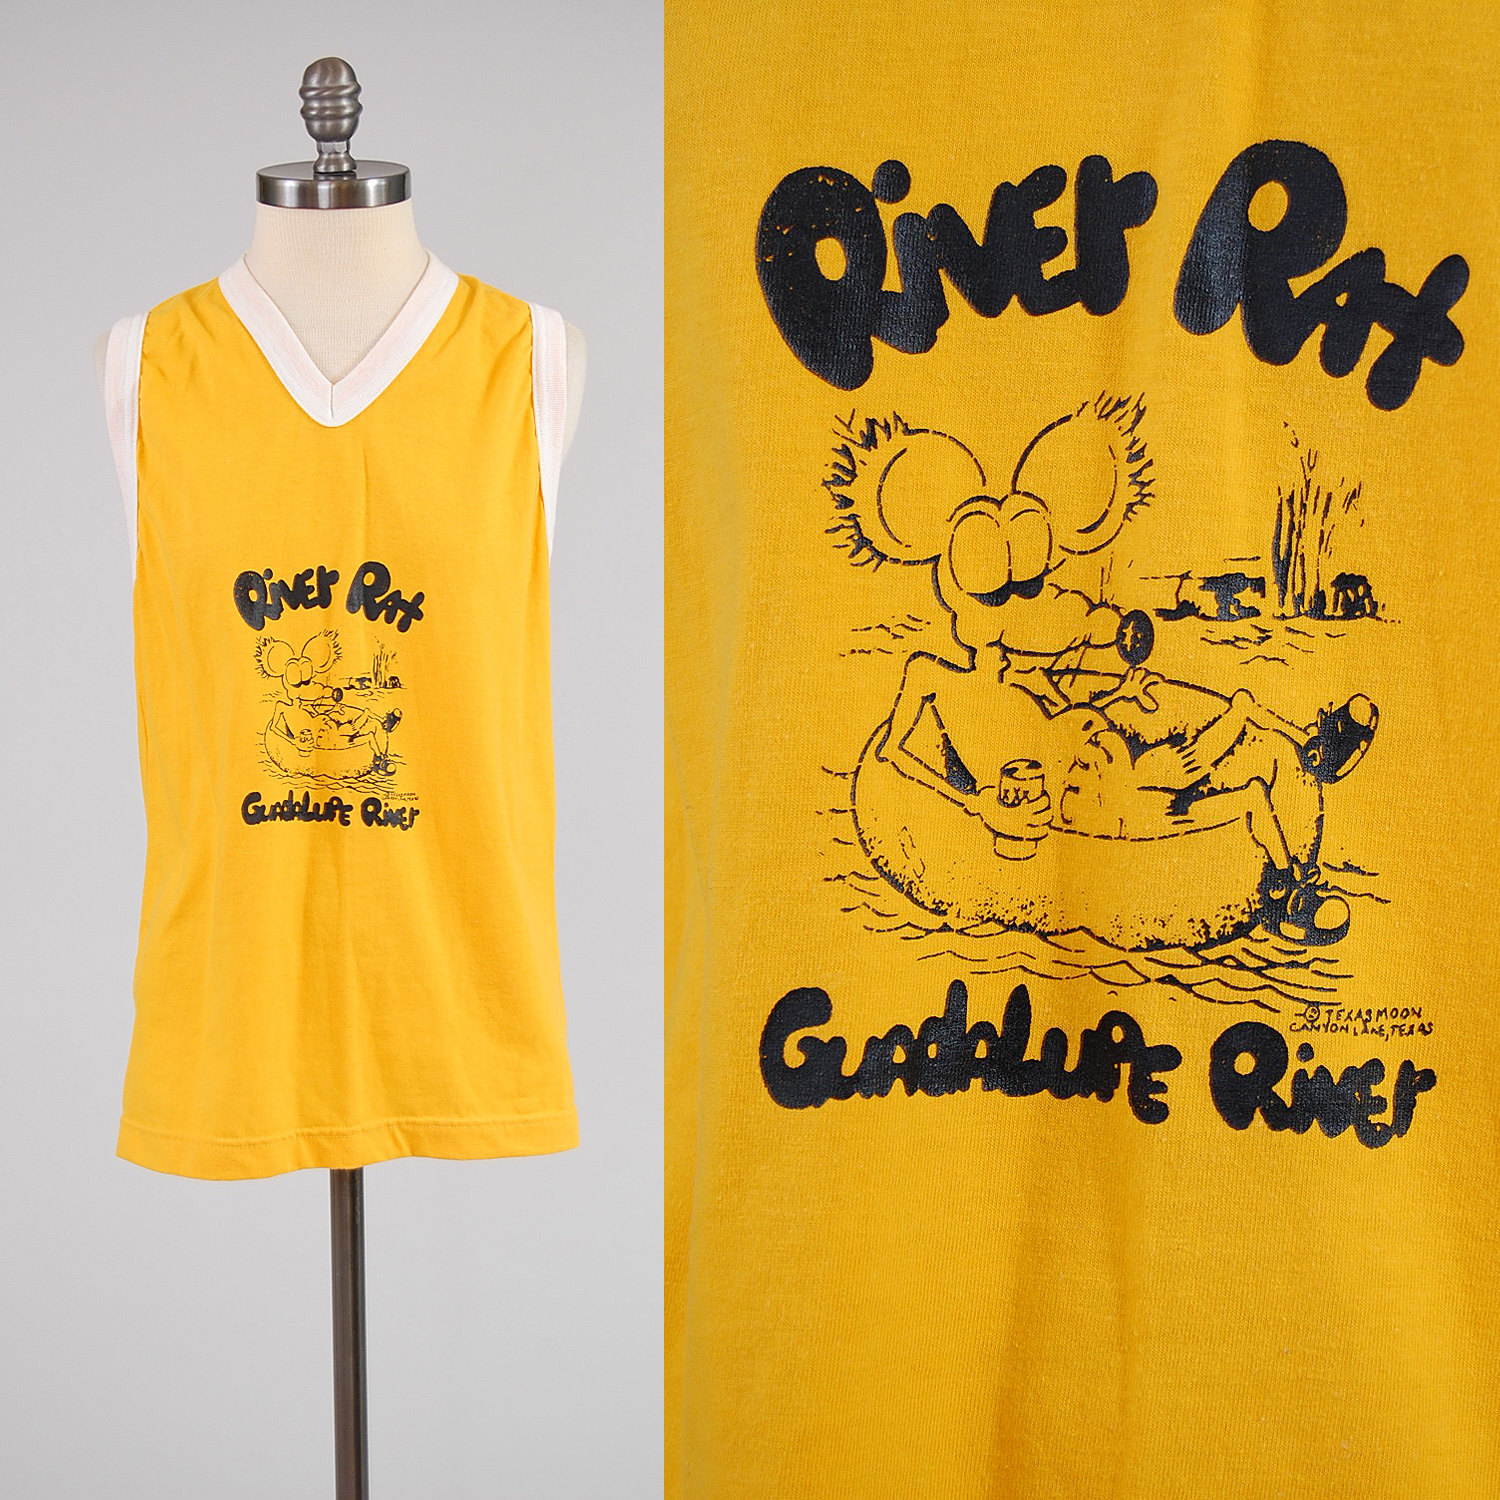 River rat clipart free stock Vintage 70s Texas River Rat ringer t shirt / Guadalupe River free stock